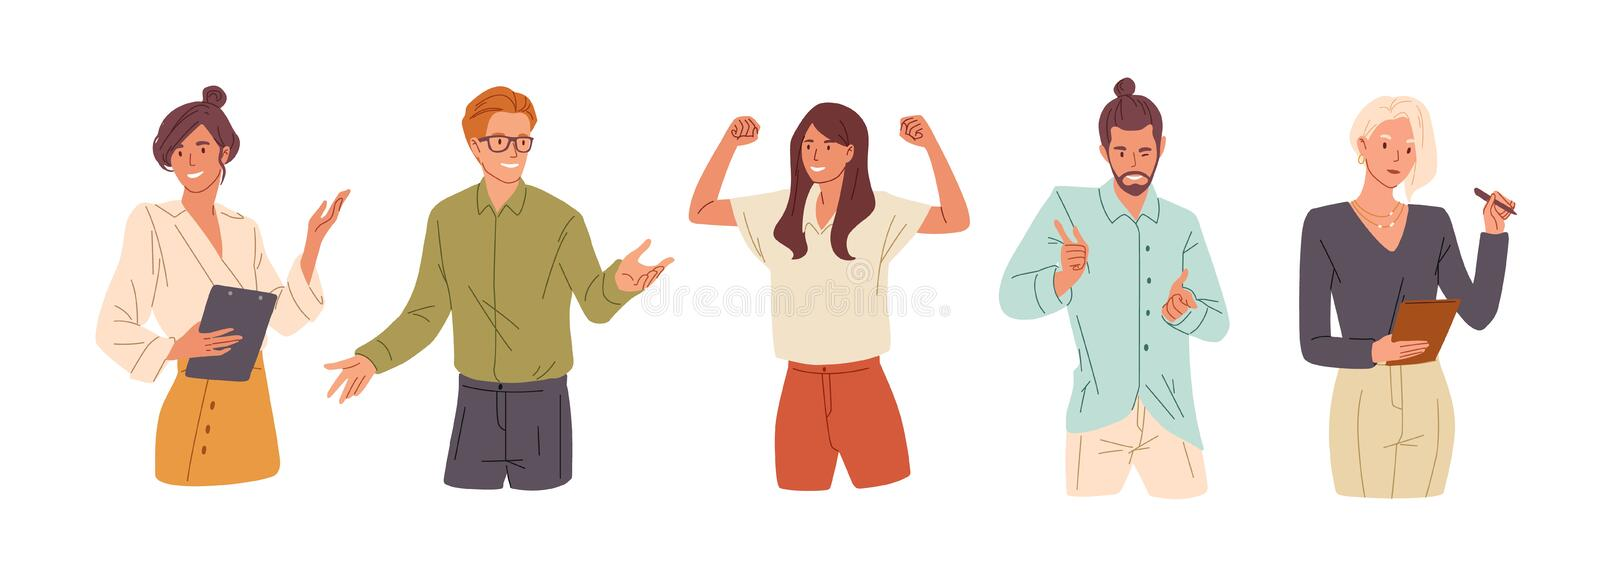 Confident people flat vector illustrations set. Presentation woman, college student and successful businesswoman. Girl. Celebrating victory, flirting man royalty free illustration